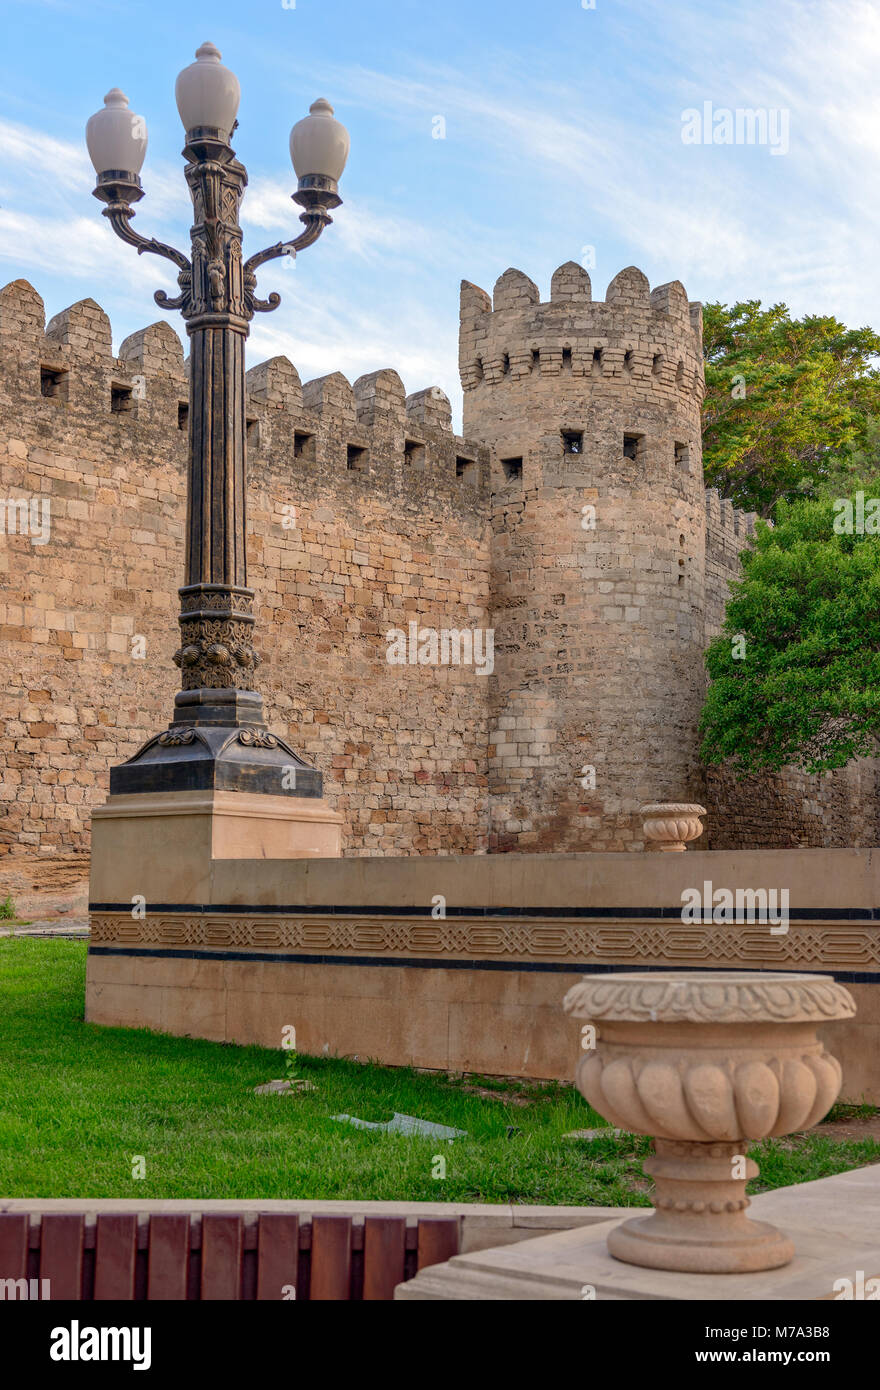 Ancient fortress wall in old city Baku, Azerbaijan - Stock Image